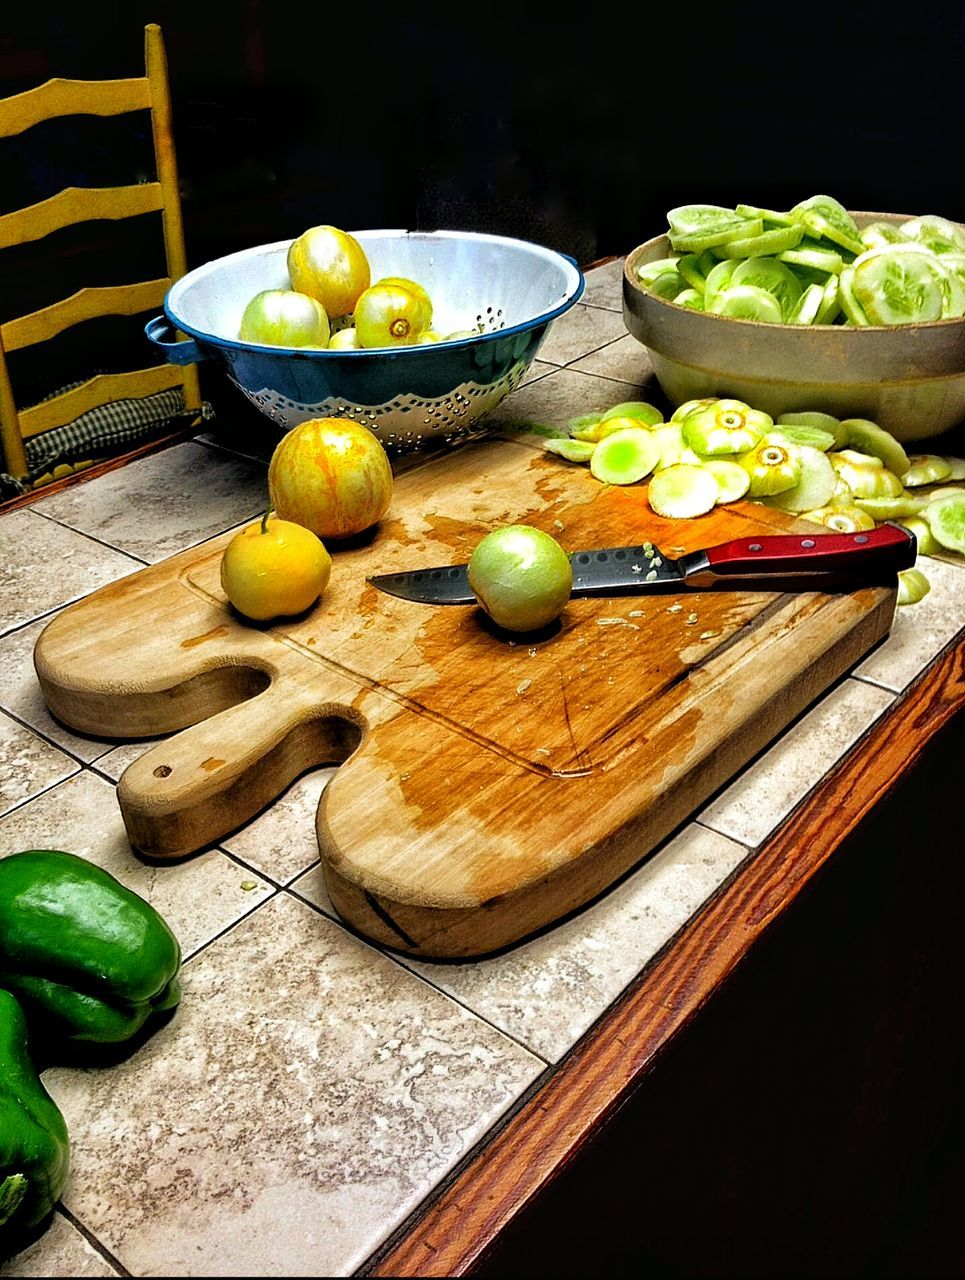 Vegetables With Knife On Table At Home